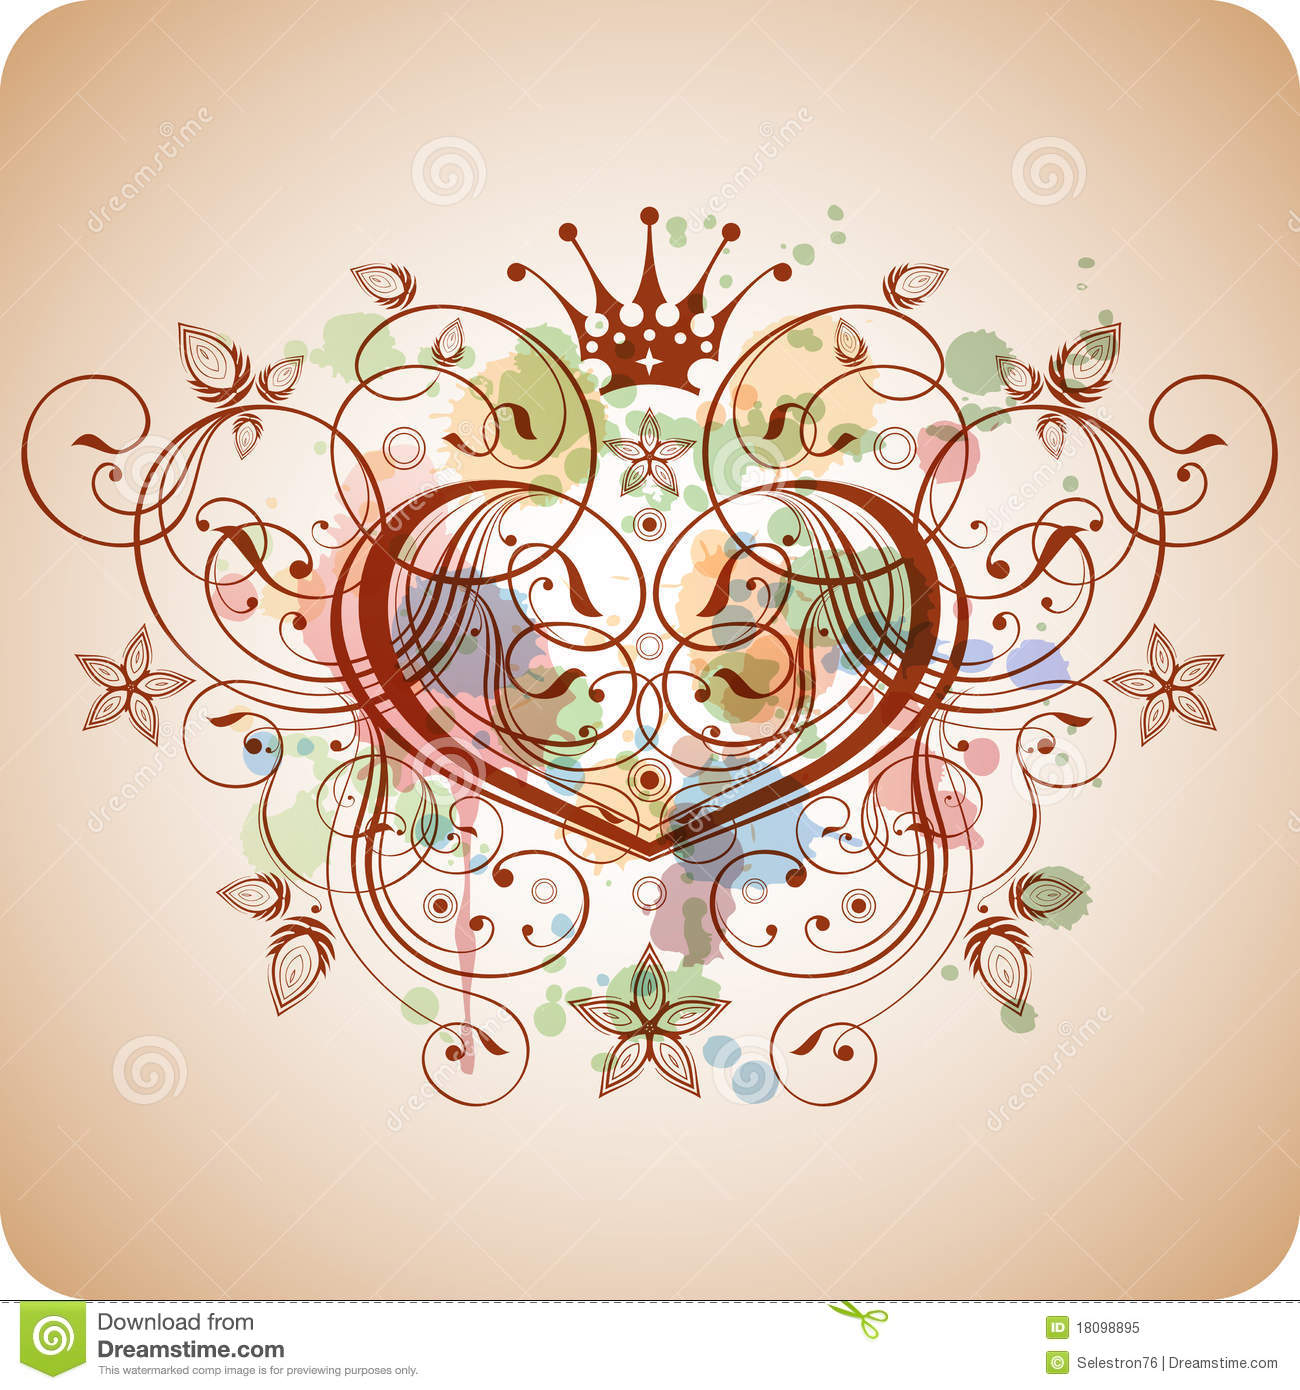 Vintage Heart & Floral Calligraphy Ornament Stock Vector - Image: 18098895